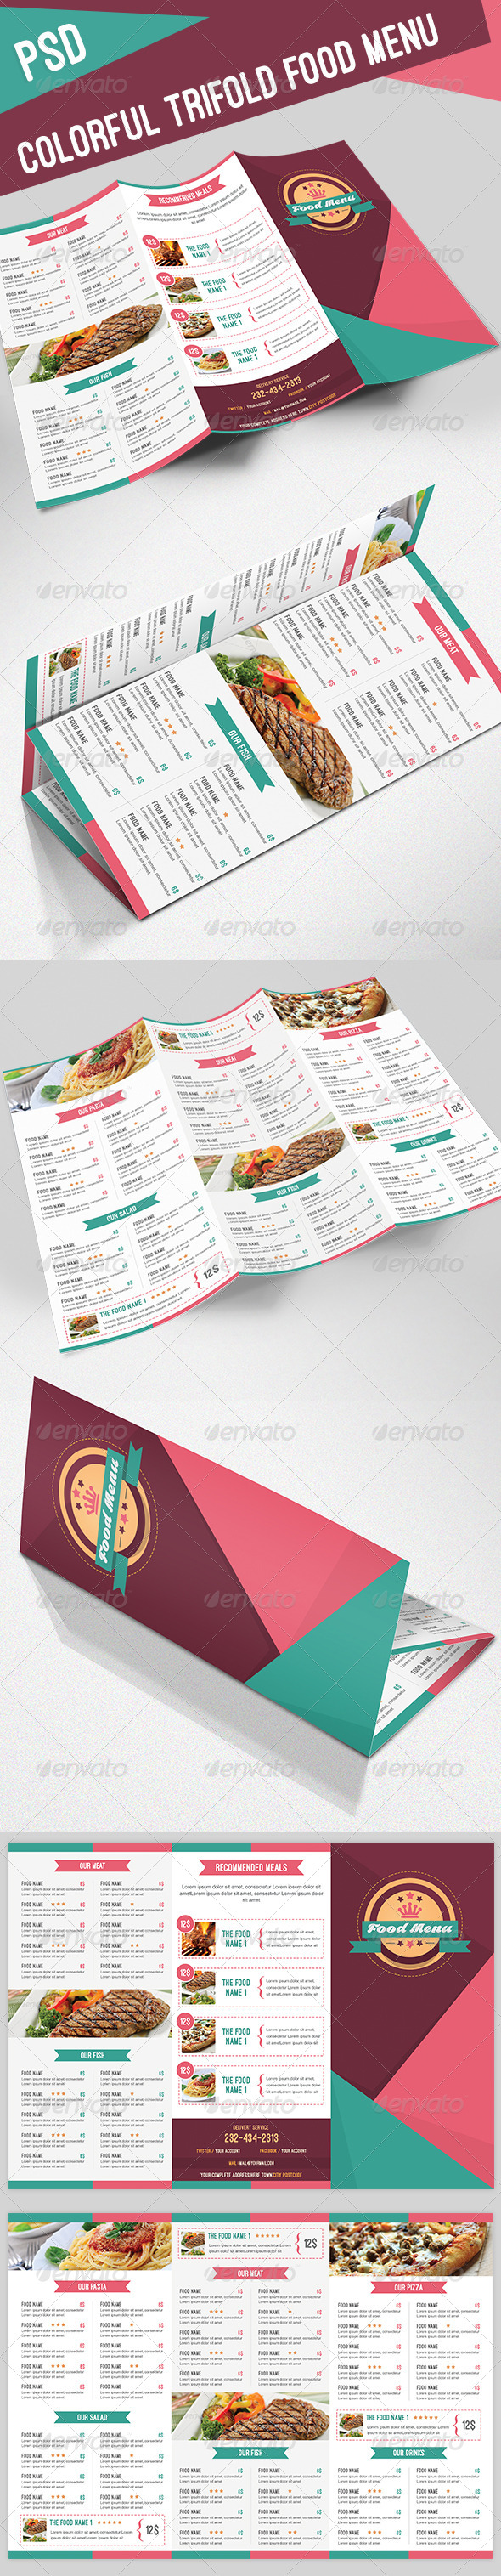 GraphicRiver Colorful Trifold Food Menu 8144768